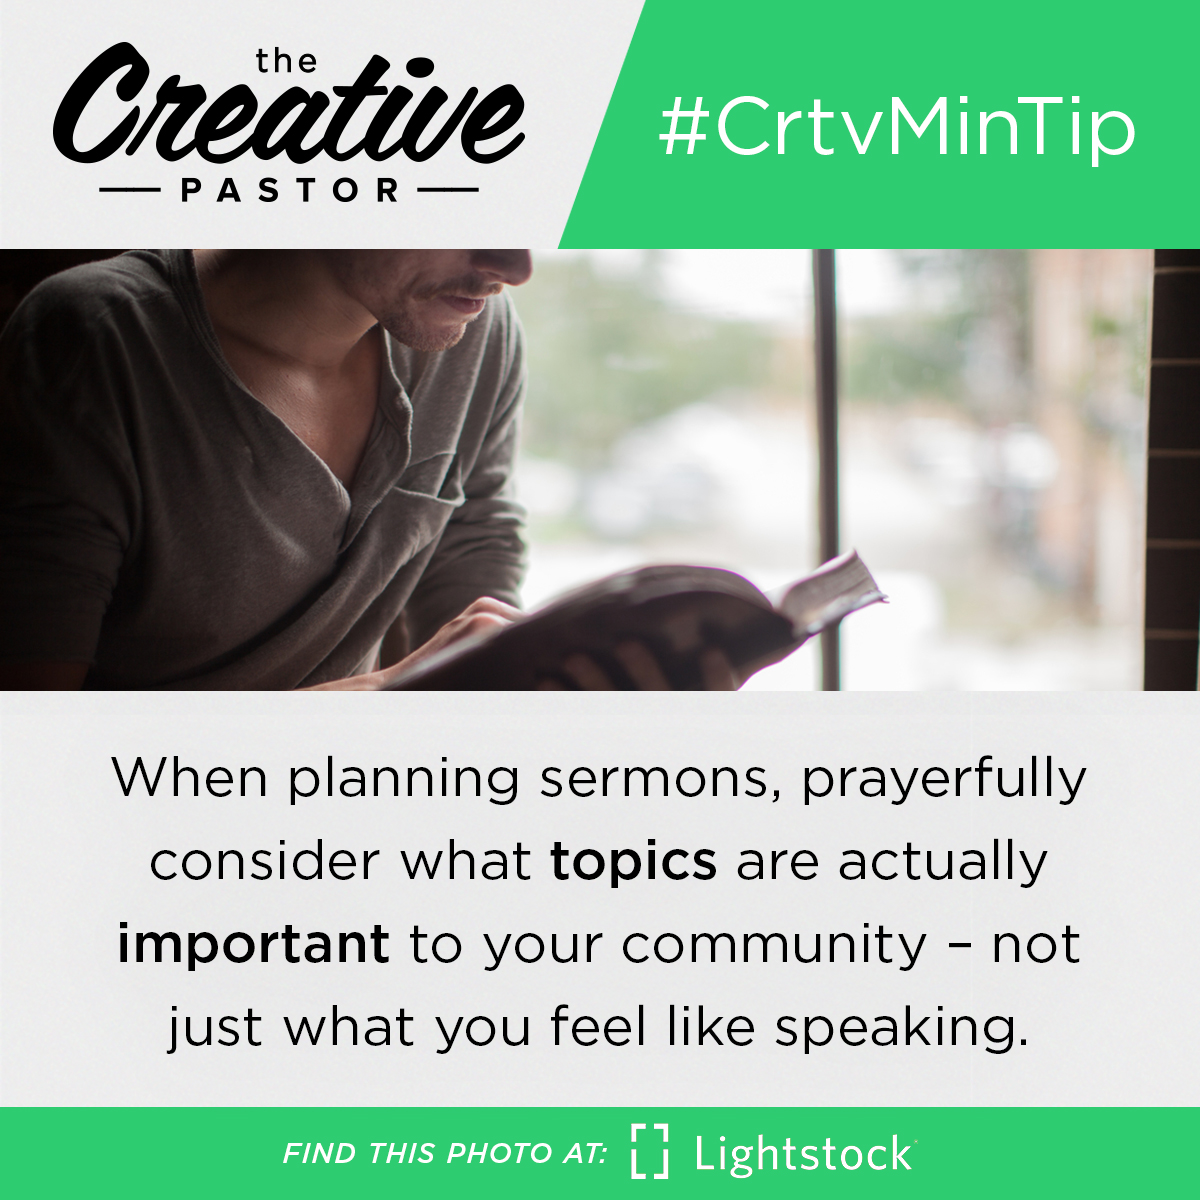 #CrtvMinTip: When planning sermons, prayerfully consider what topics are actually important to your community – not just what you feel like speaking.